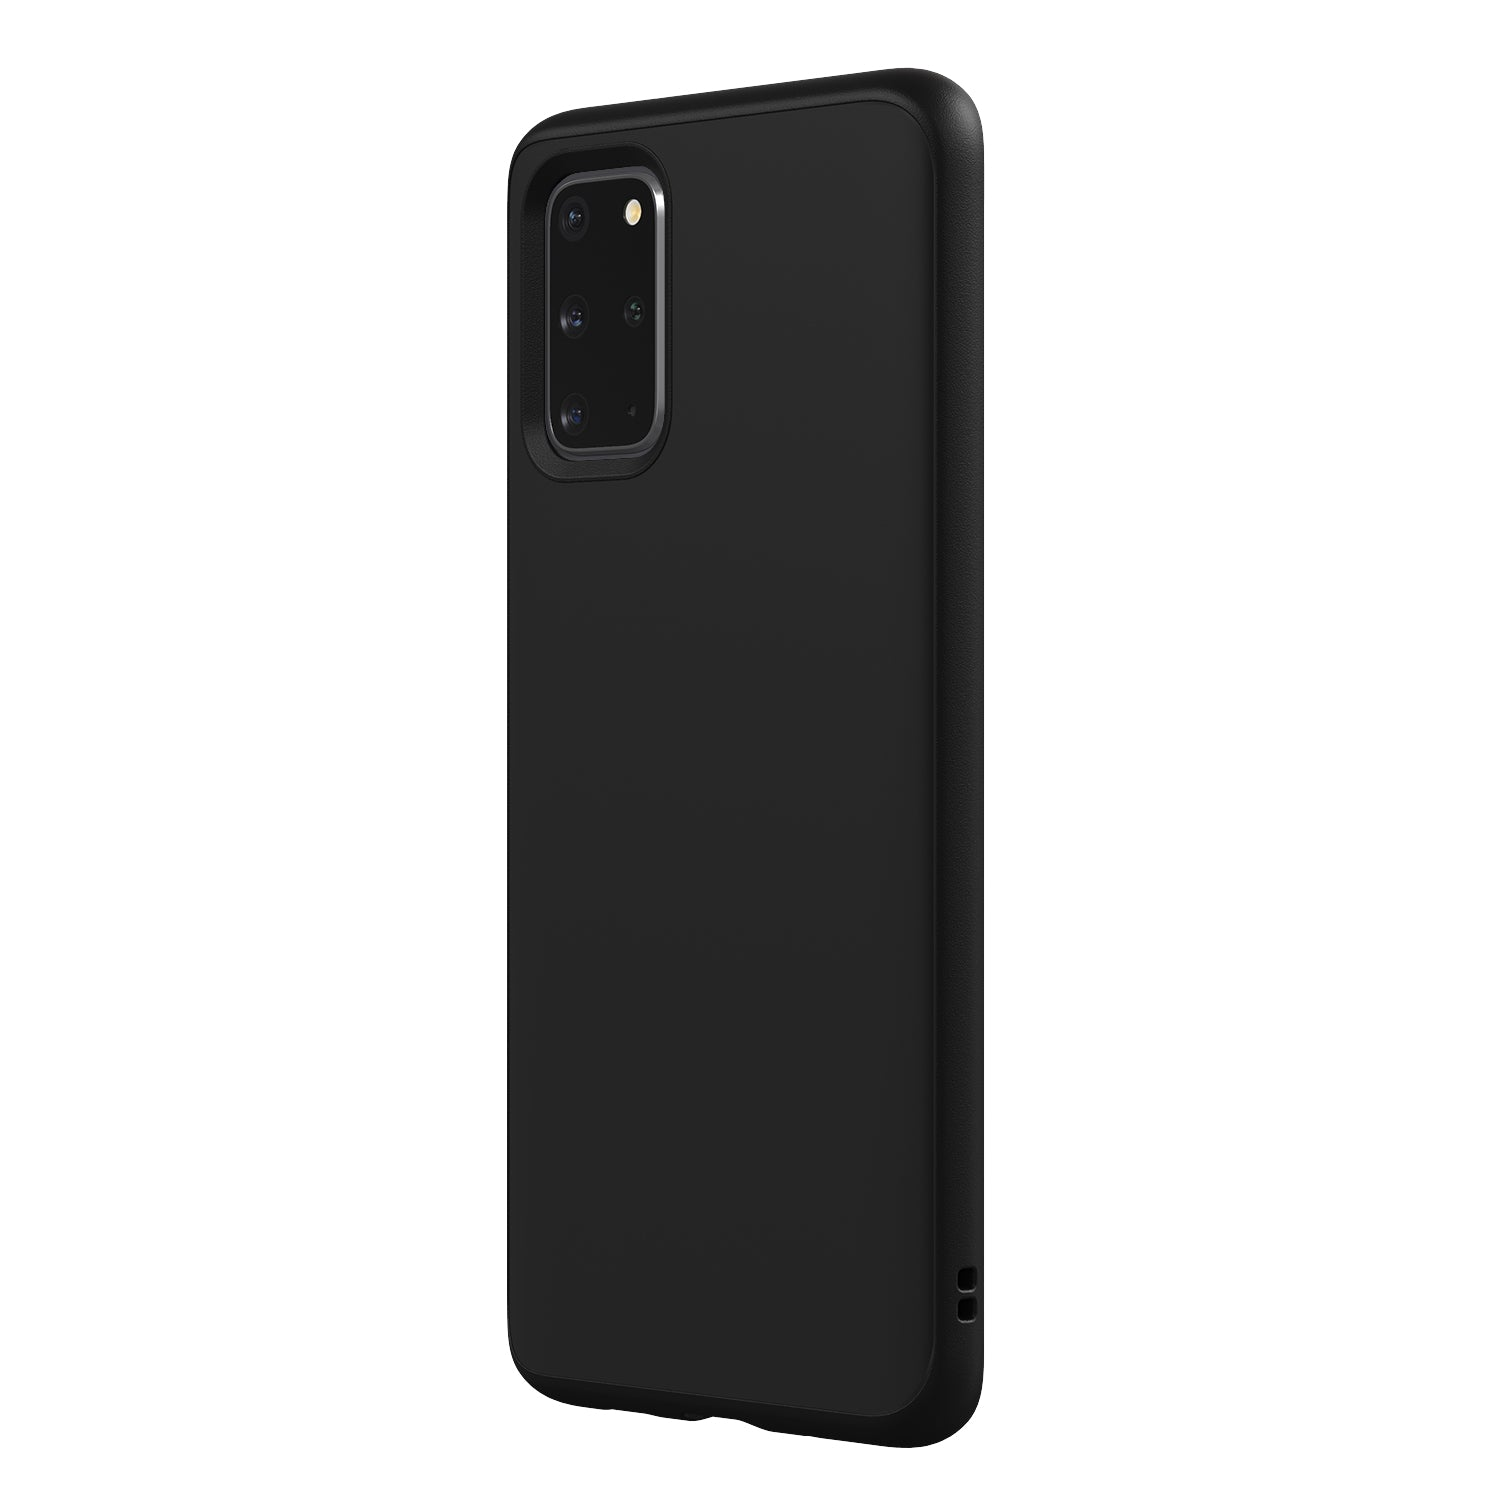 RhinoShield SolidSuit Case For Samsung Galaxy S20 Plus - Classic Black